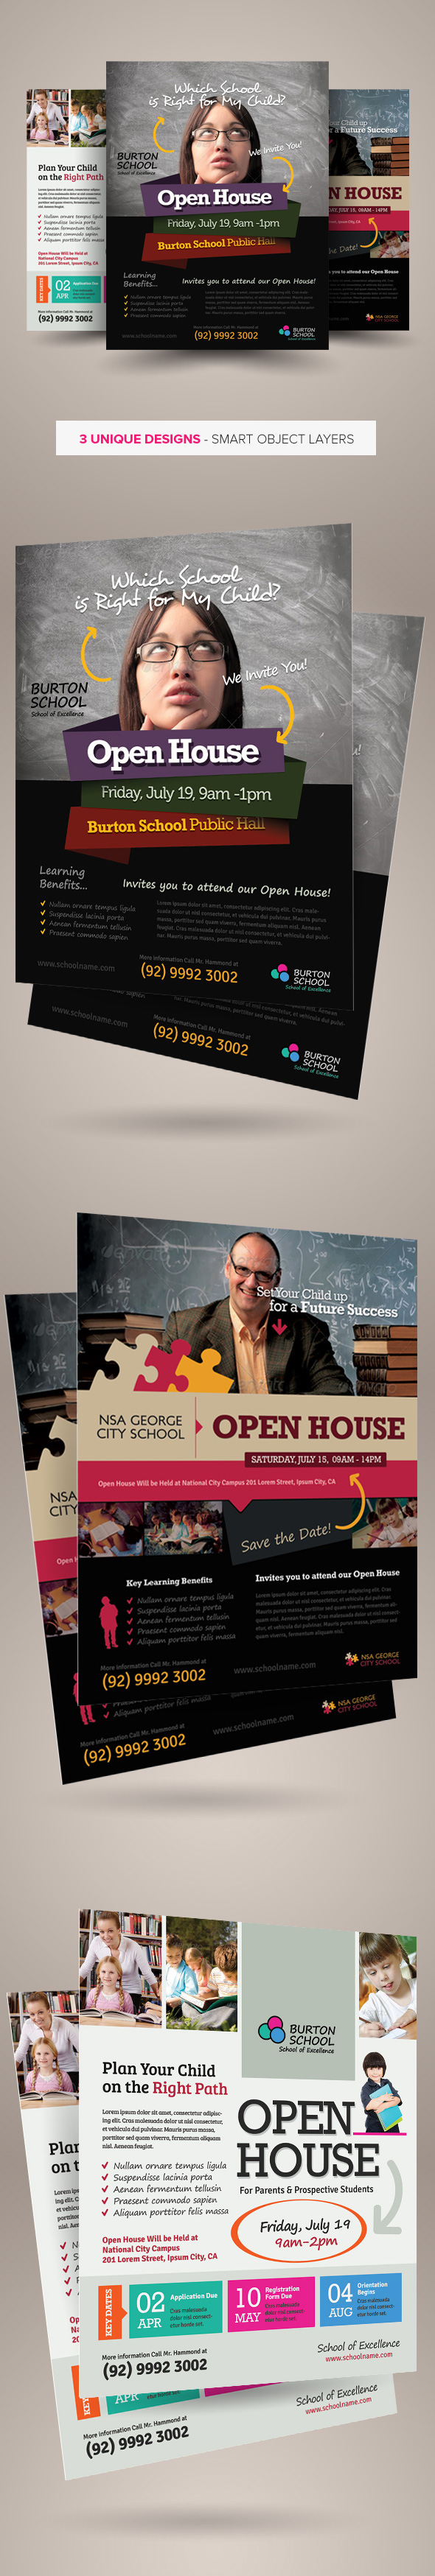 School Open House Flyers on Behance – Open House Template